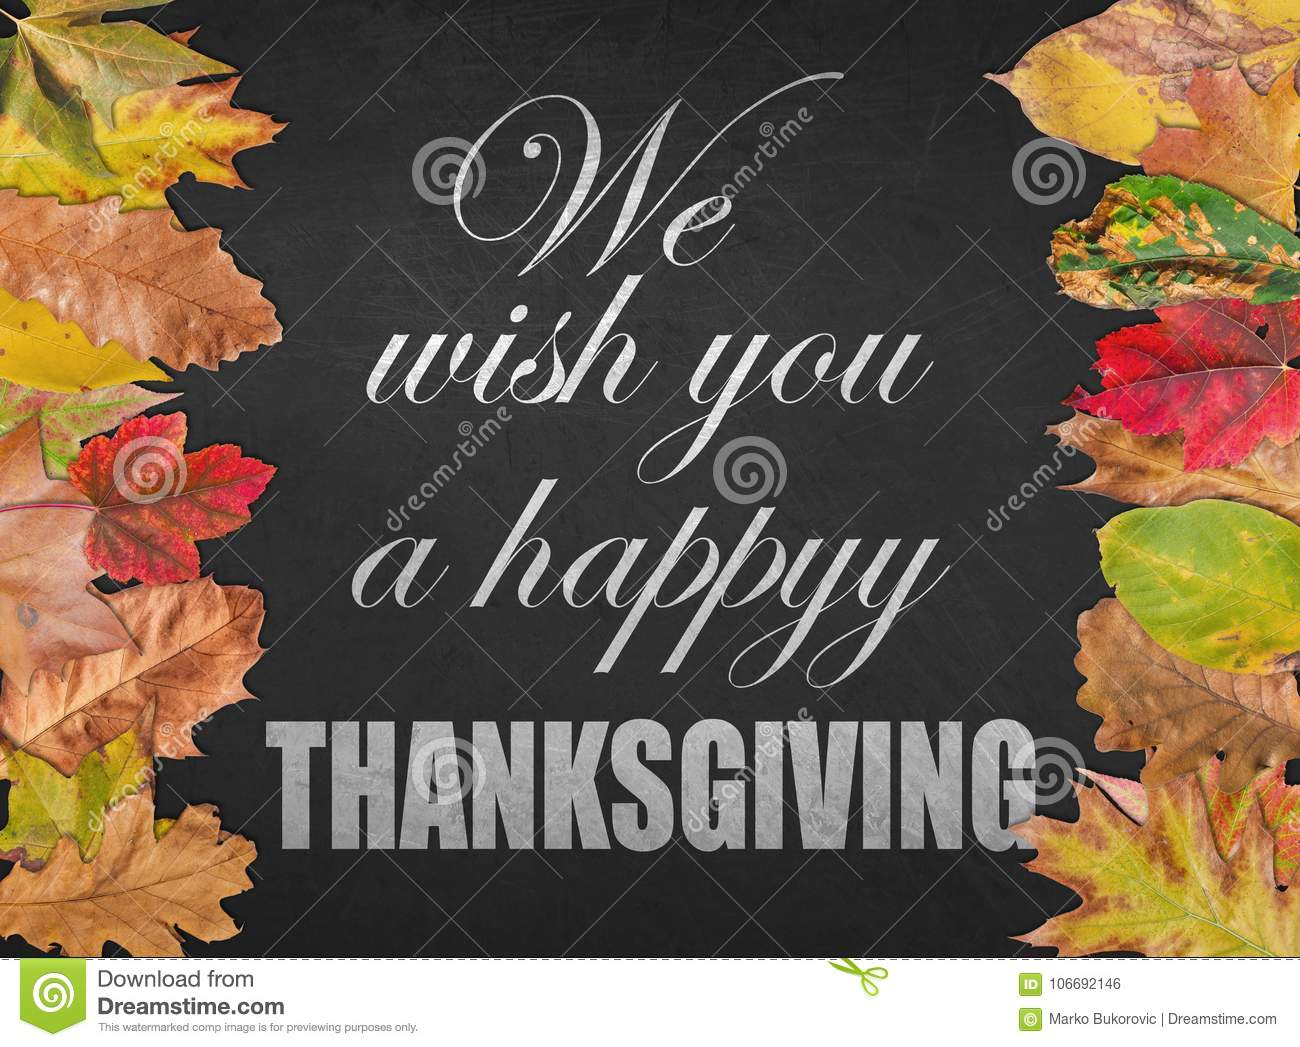 2019 year lifestyle- Wishes day Thanksgiving